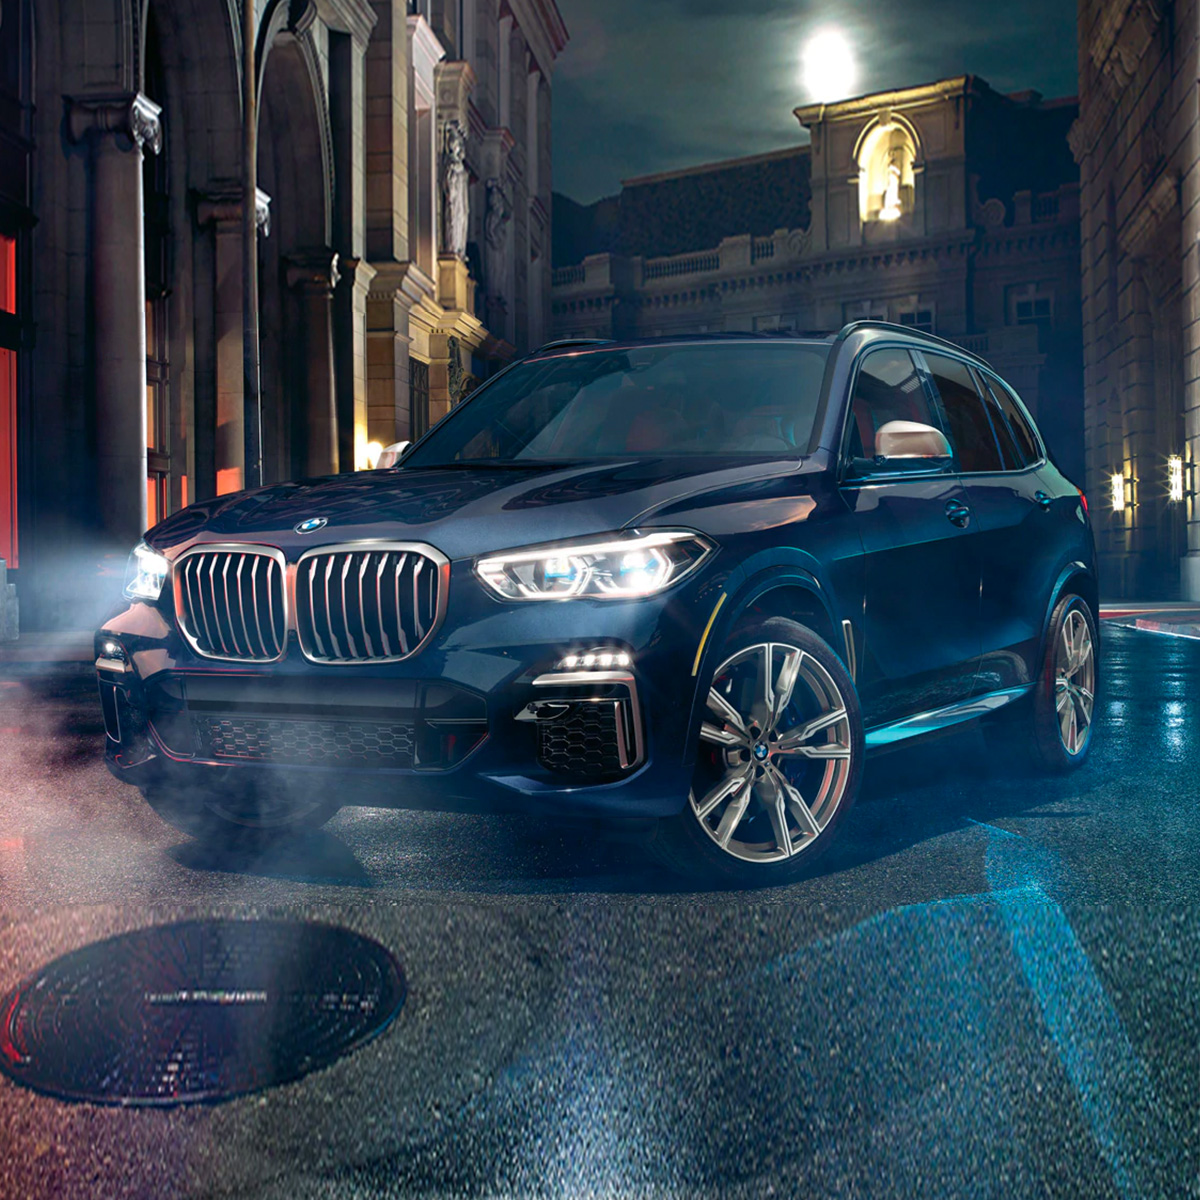 Profile view of blue 2021 BMW X5 at night